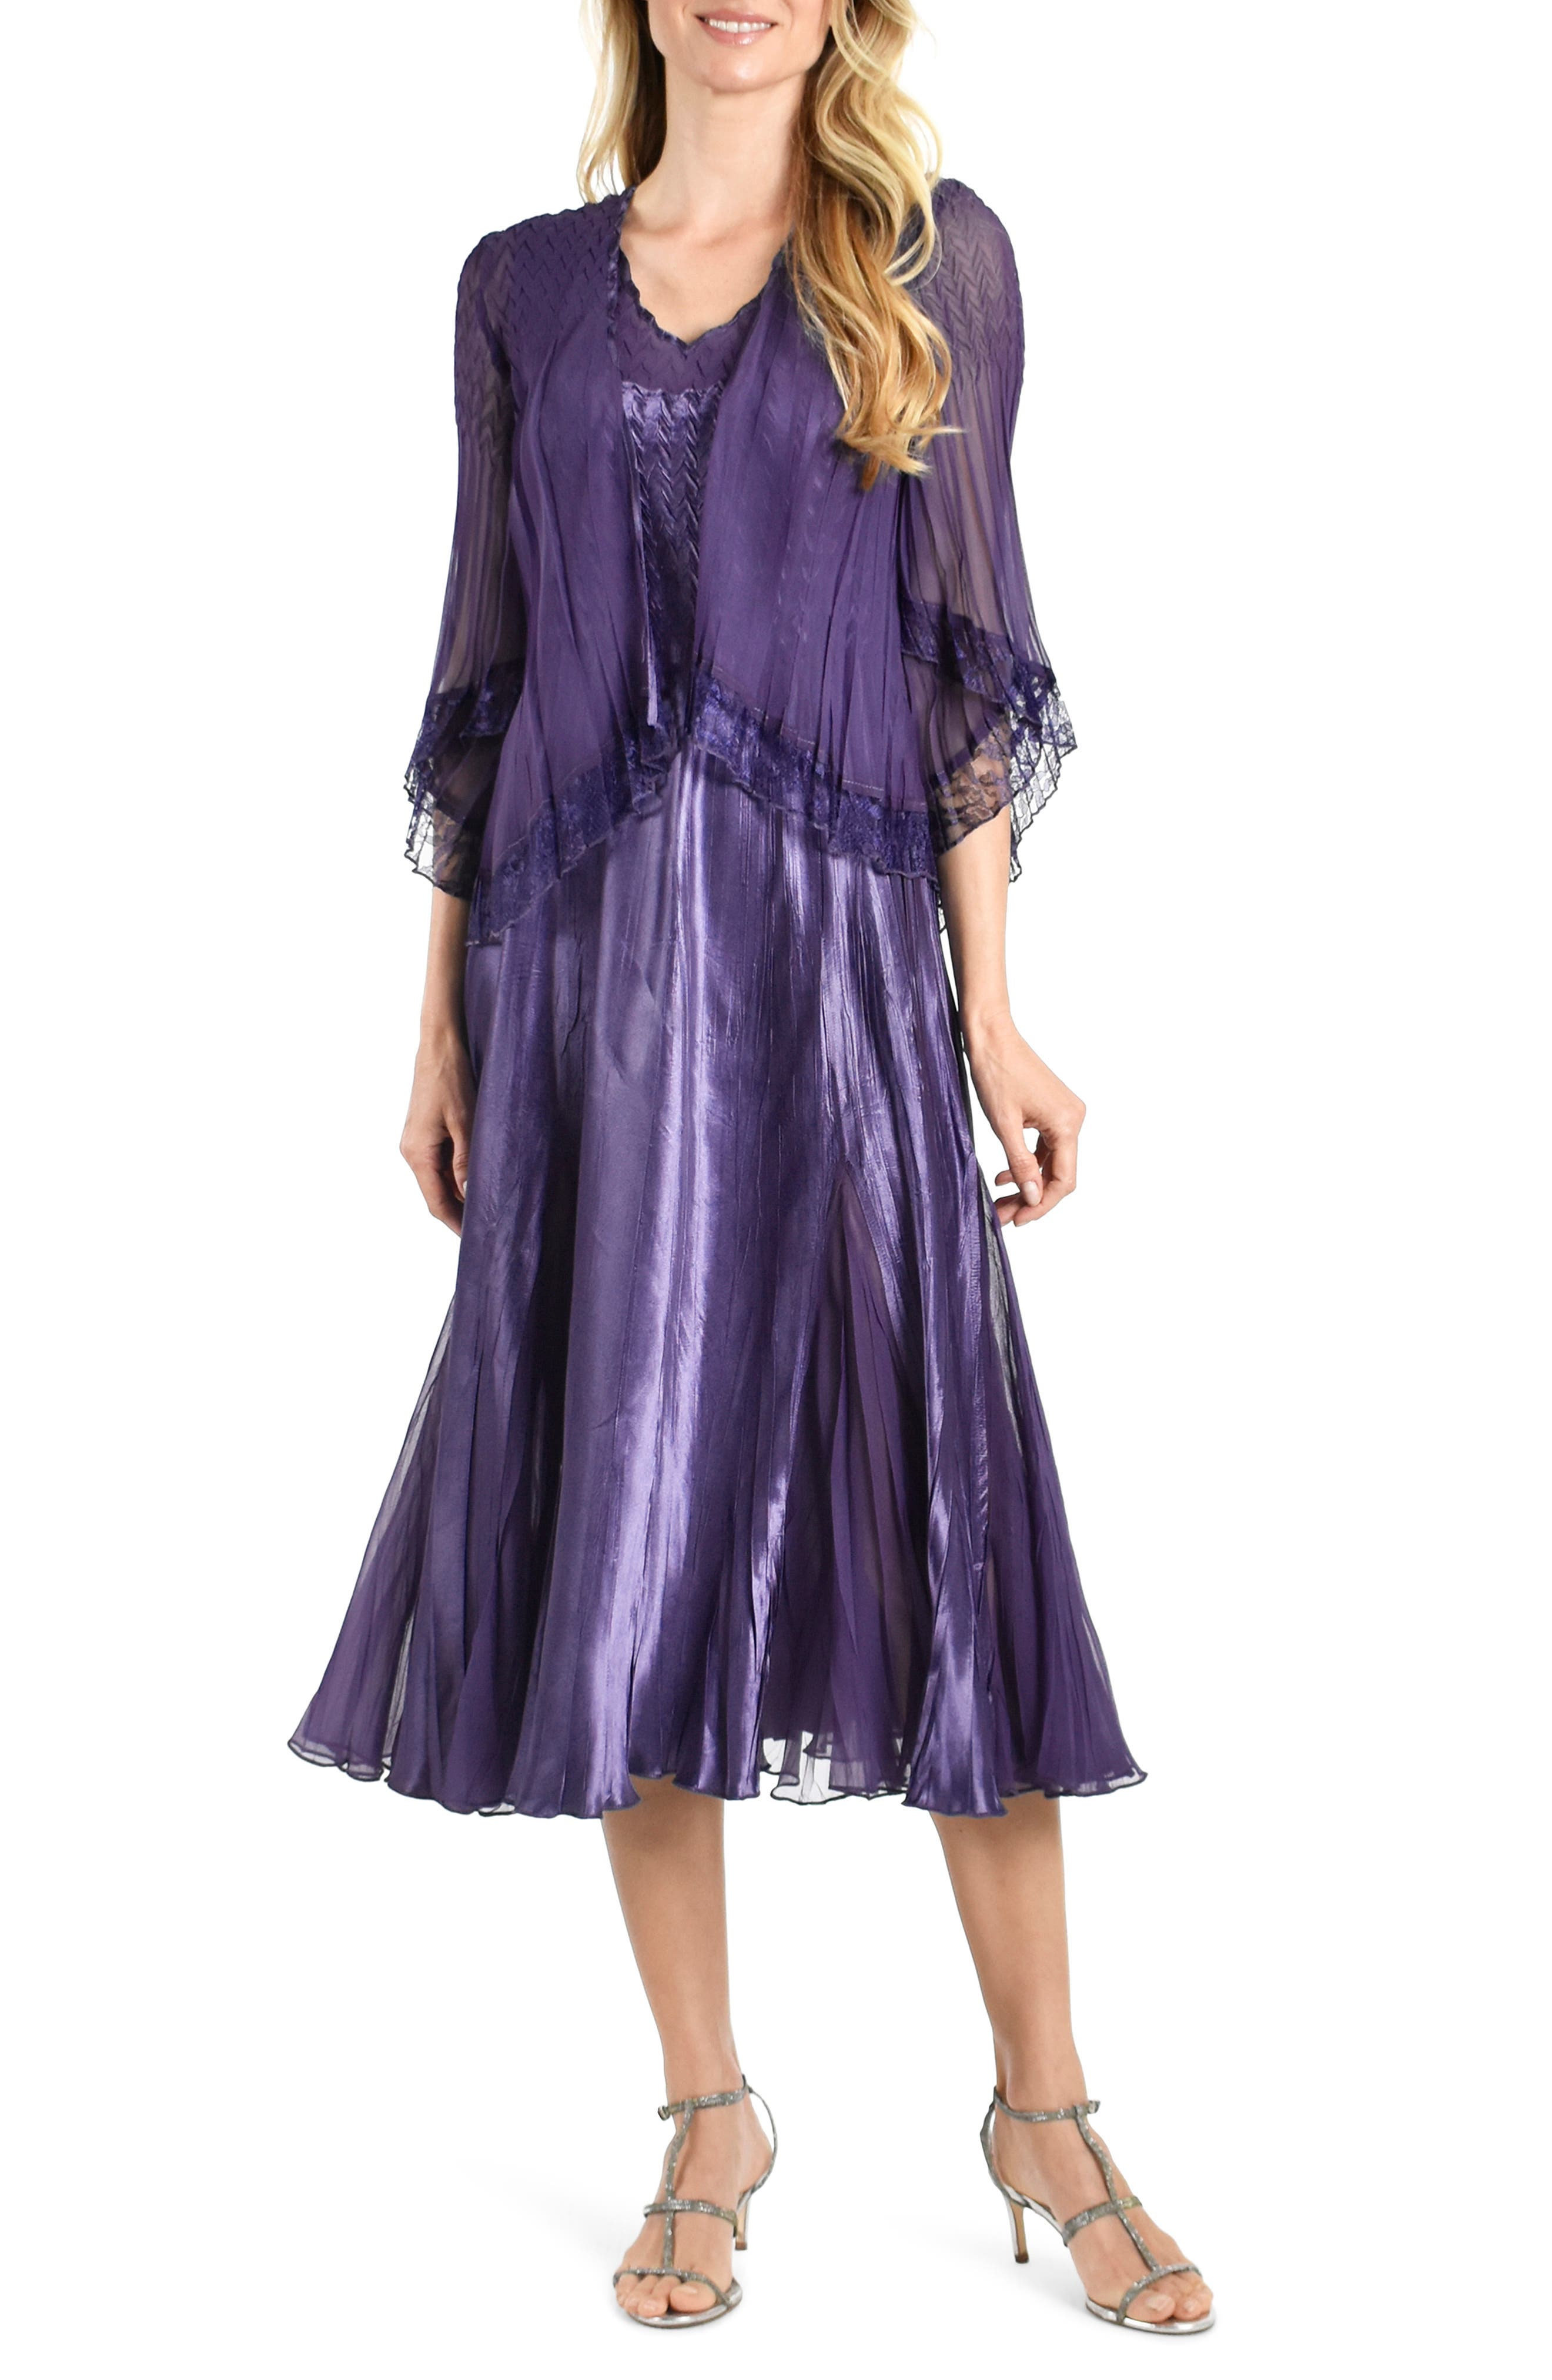 1920s Evening Dresses & Formal Gowns Womens Komarov Charmeuse  Chiffon Midi Dress With Jacket Size Medium - Purple $438.00 AT vintagedancer.com